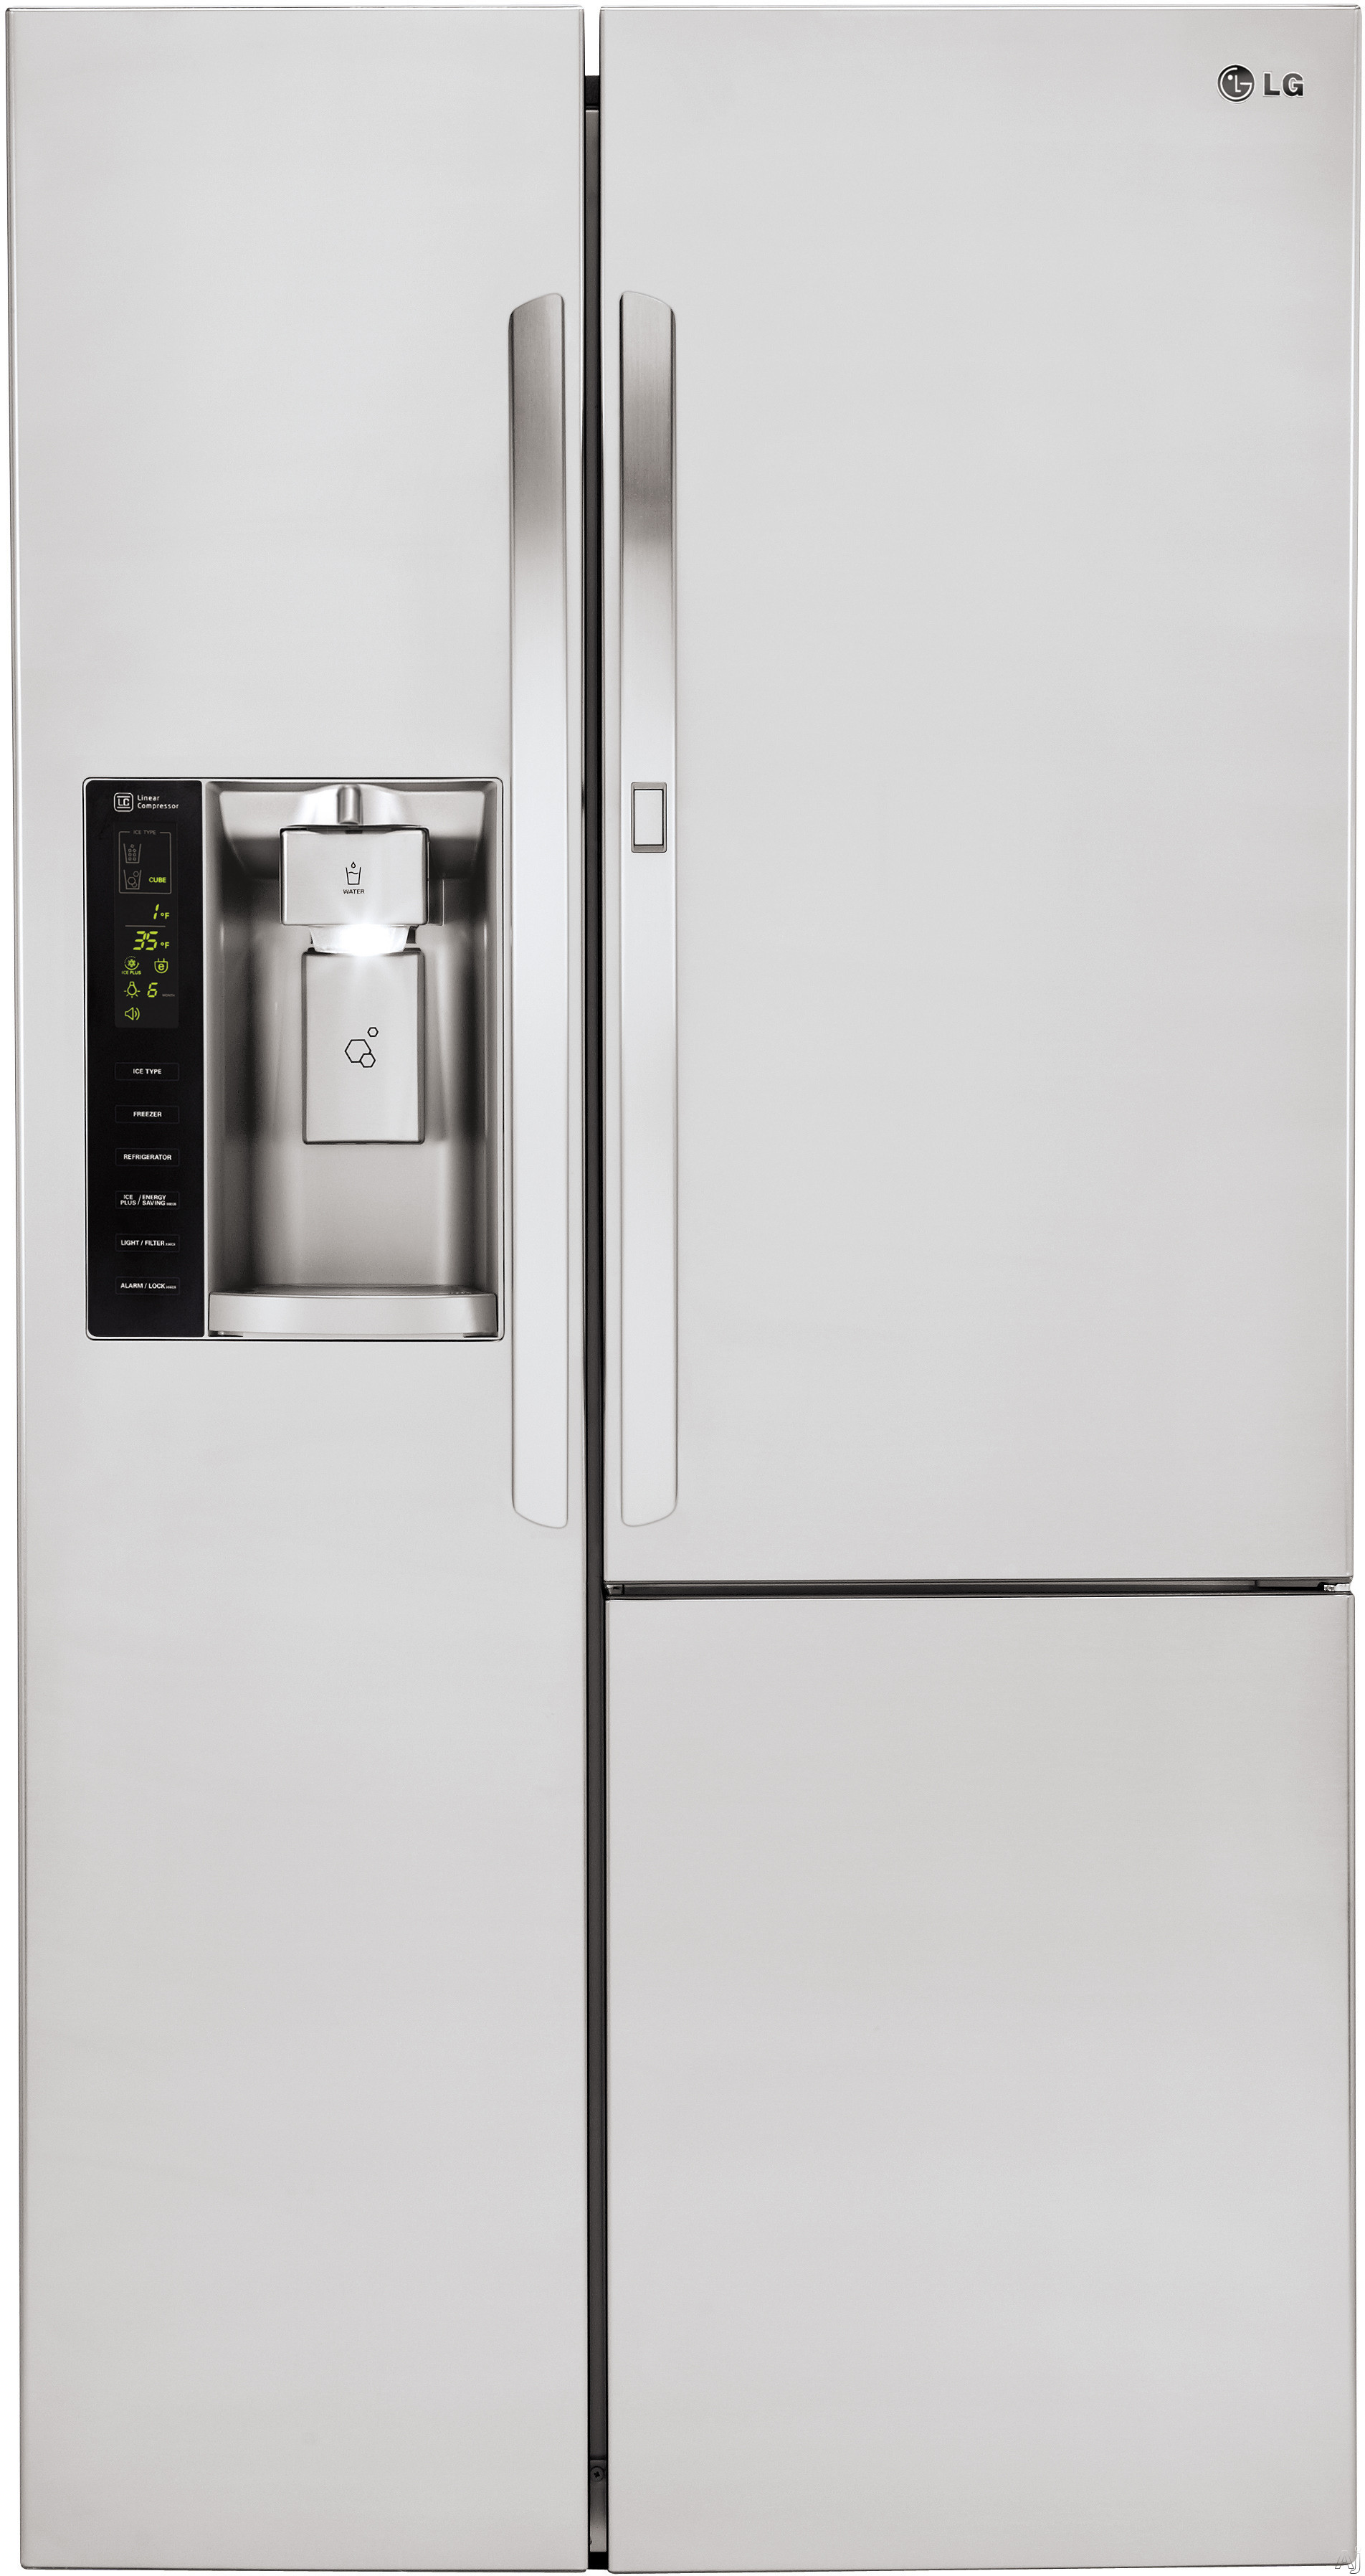 LG LSXS26366S 36 Inch Side-by-Side Refrigerator with Door-in-Door®, ColdSaver™ Panel, SpacePlus® Ice System, Linear Compressor, Ice and Water Dispenser, Water and Air Filter, Adjustable Gl